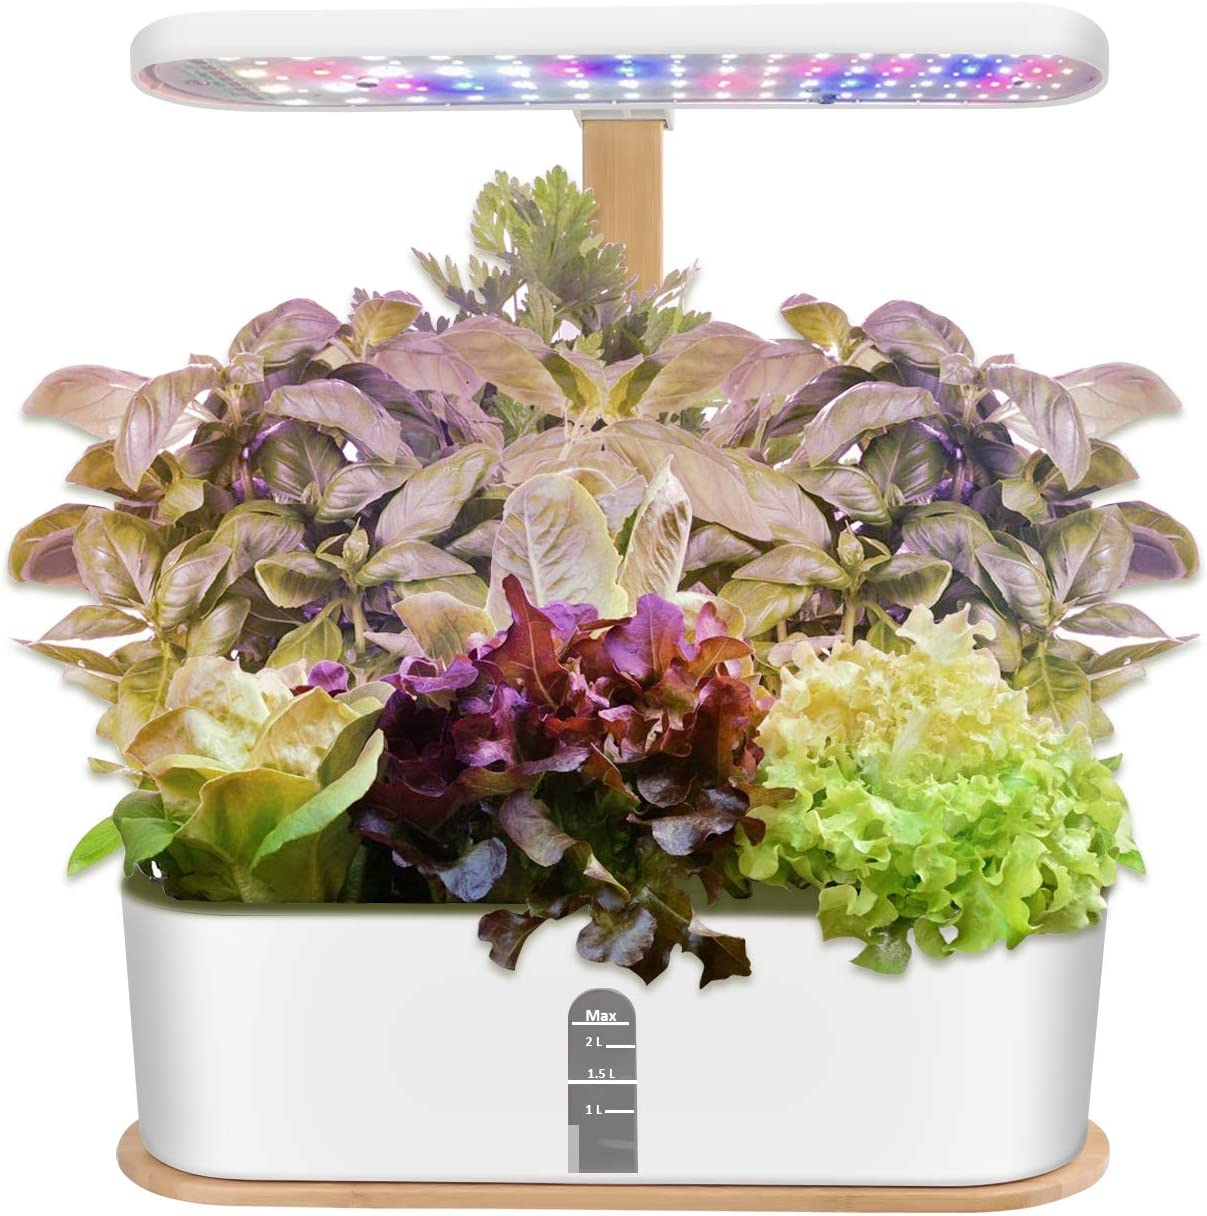 Indoor Hydroponic Herb Garden, Hydroponics Growing System with LED Grow Light, Smart Garden Planter for Home Kitchen, Automatic Timer Germination Kit, Height Adjustable (No Seeds)